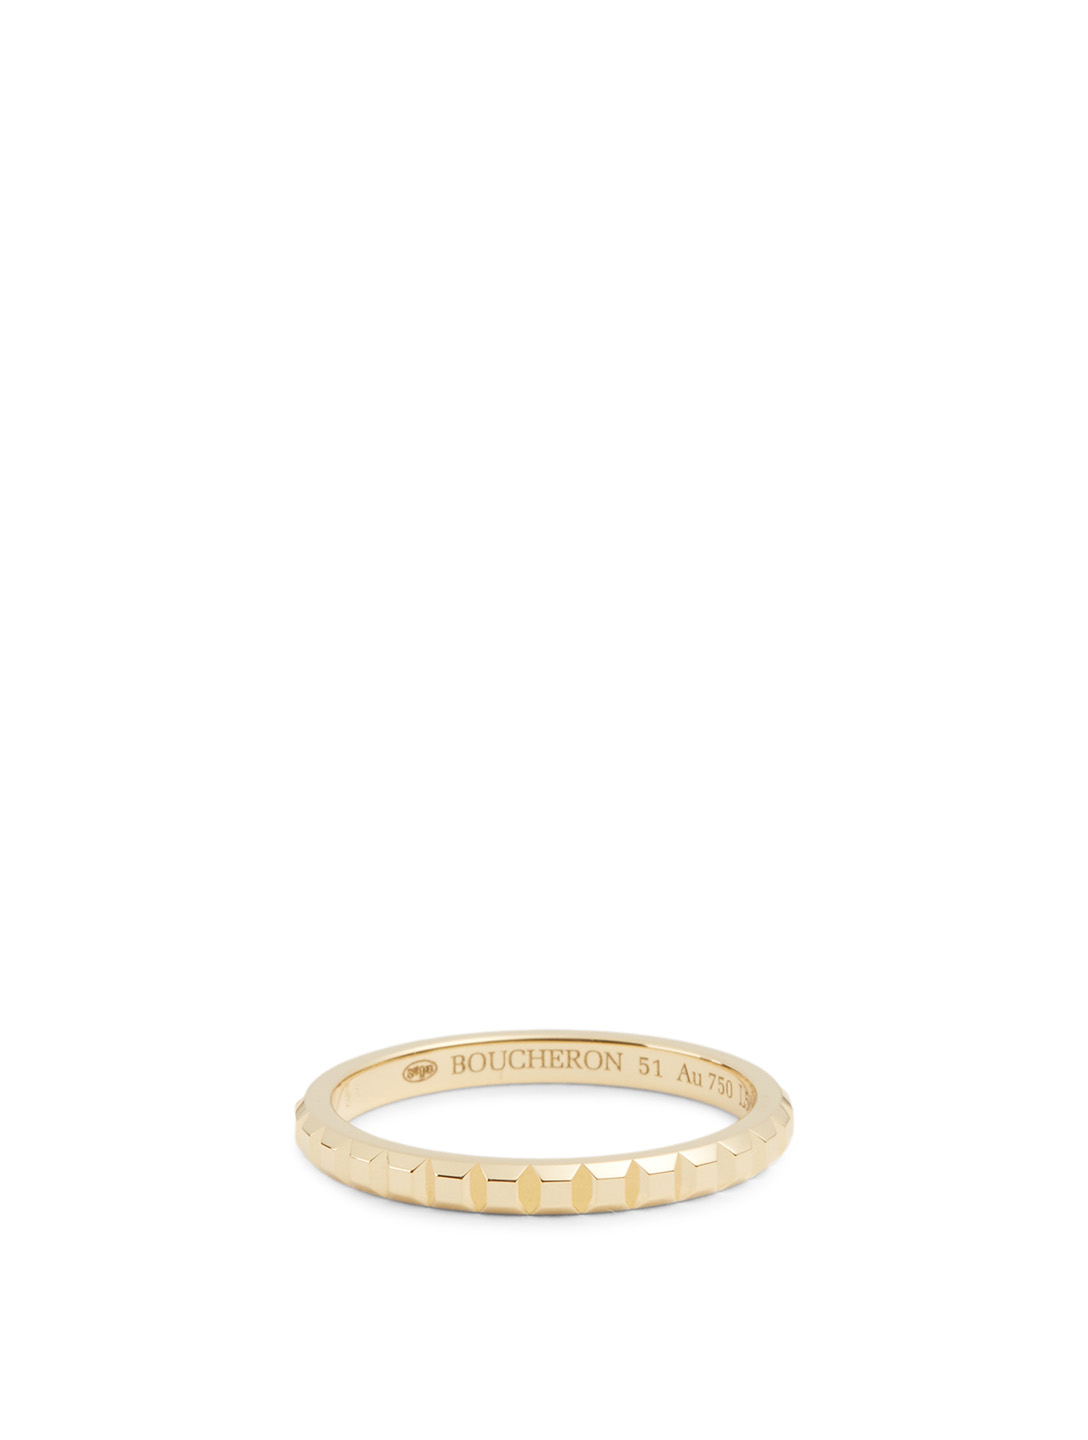 BOUCHERON Mini Clou De Paris Gold Wedding Band Women's Metallic